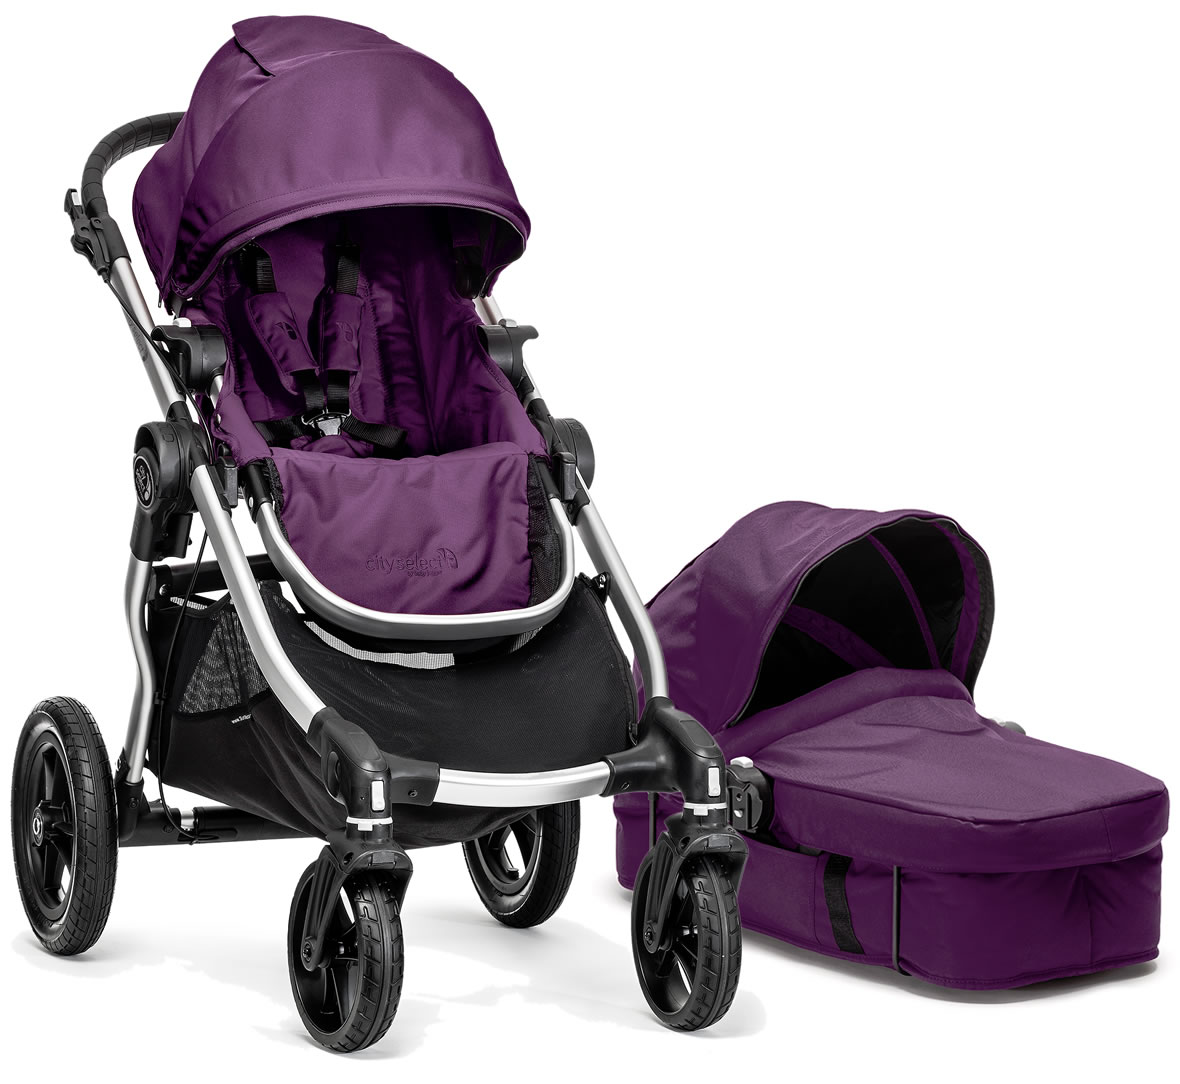 Baby Jogger 2014 City Select Stroller Amp Bassinet Amethyst